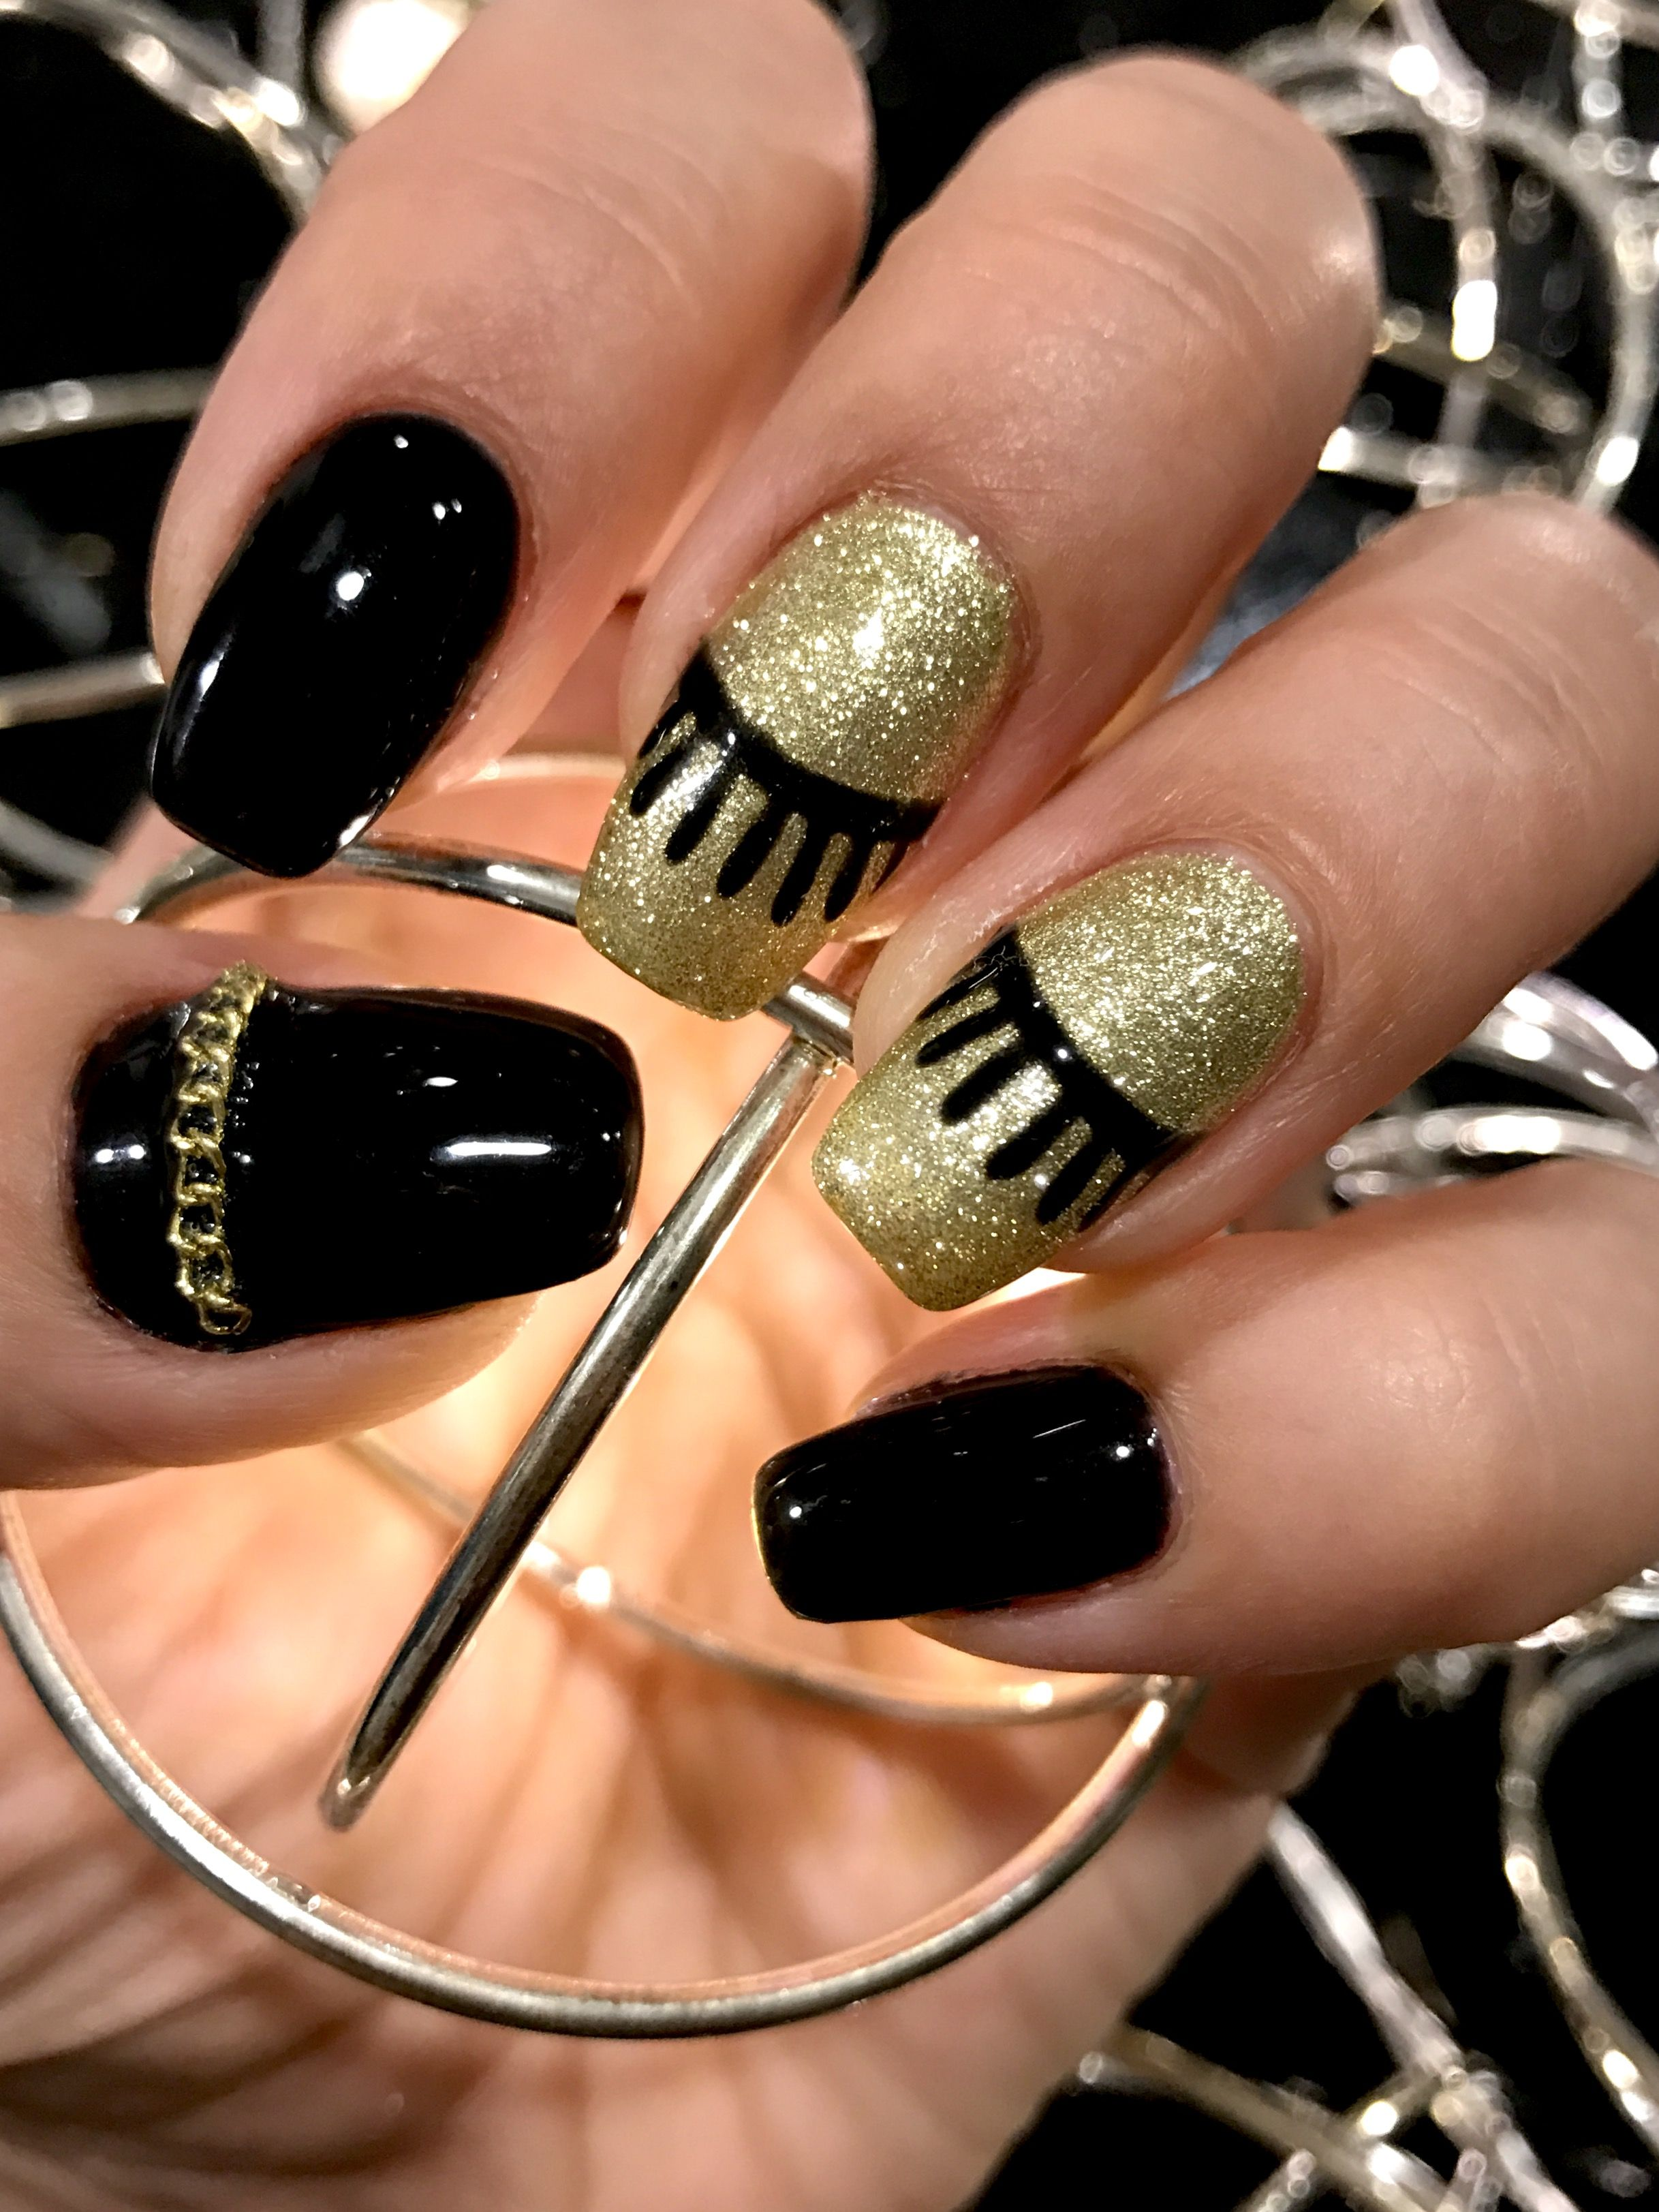 Fashion nails Eyelashes design In gold and black colors . Great for ...